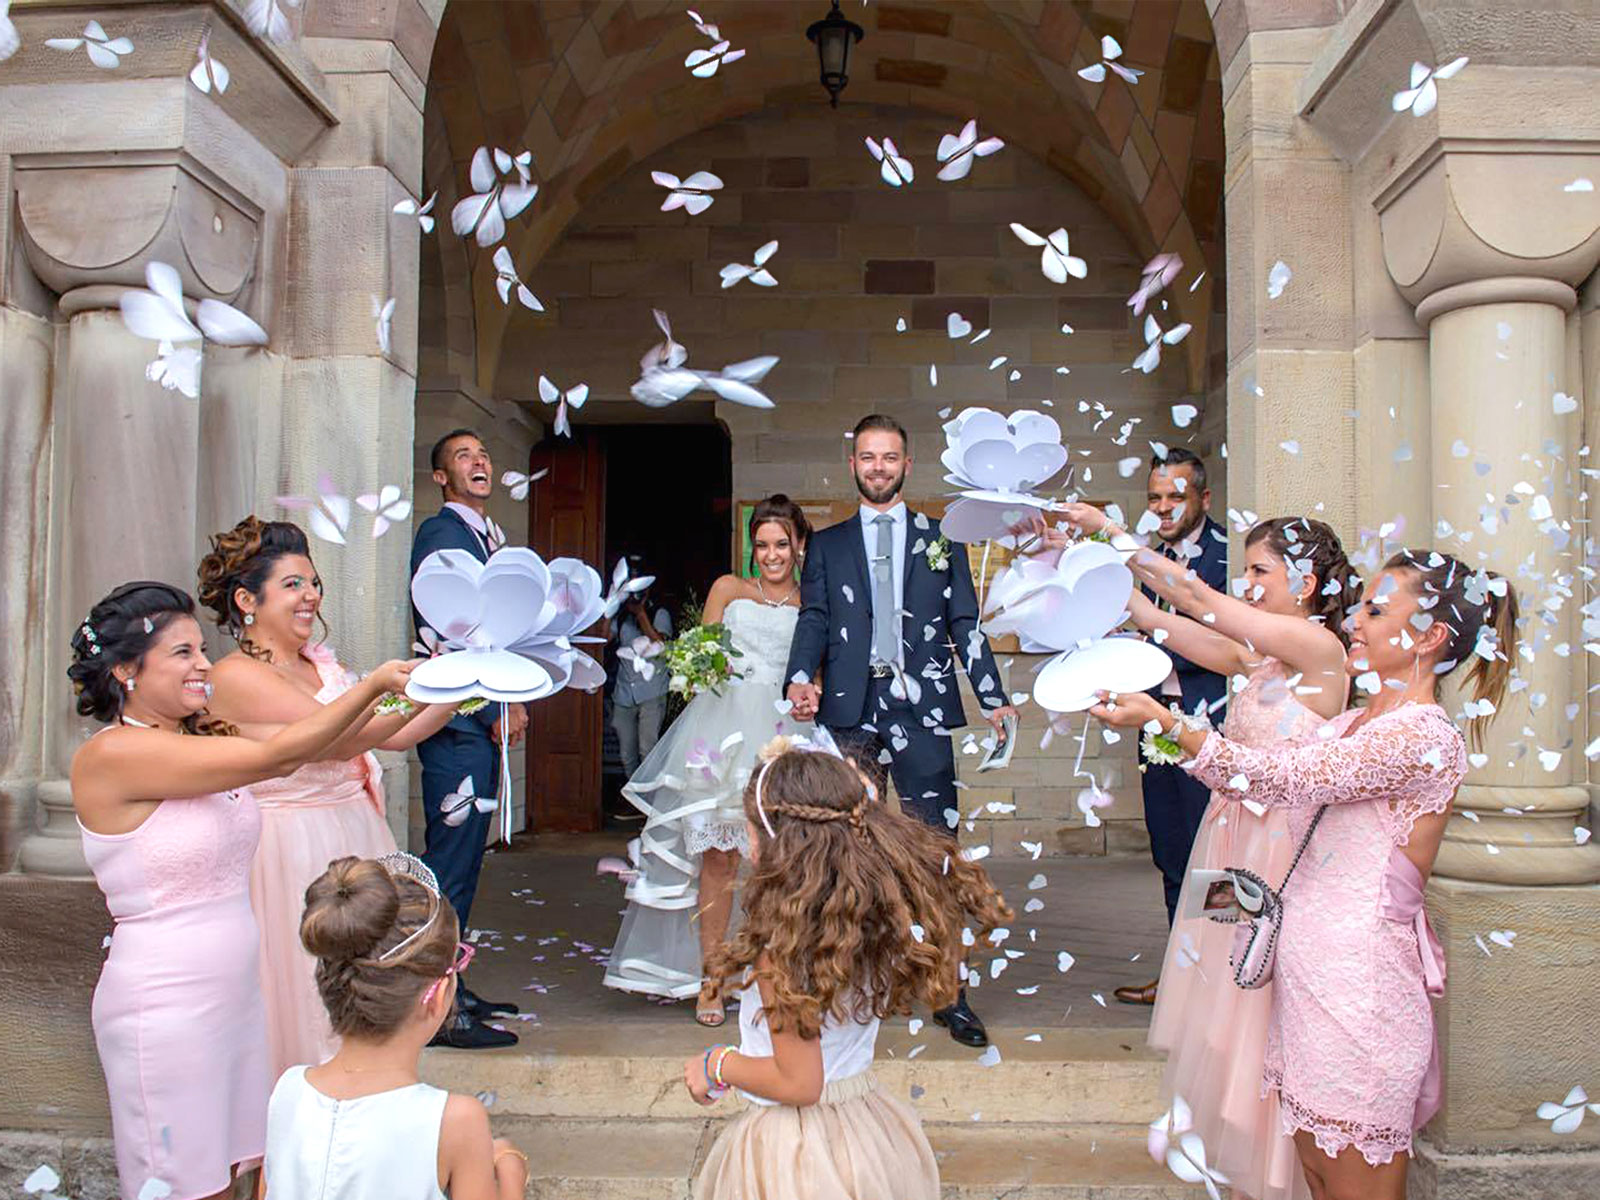 Magic Flyer for your wedding exit